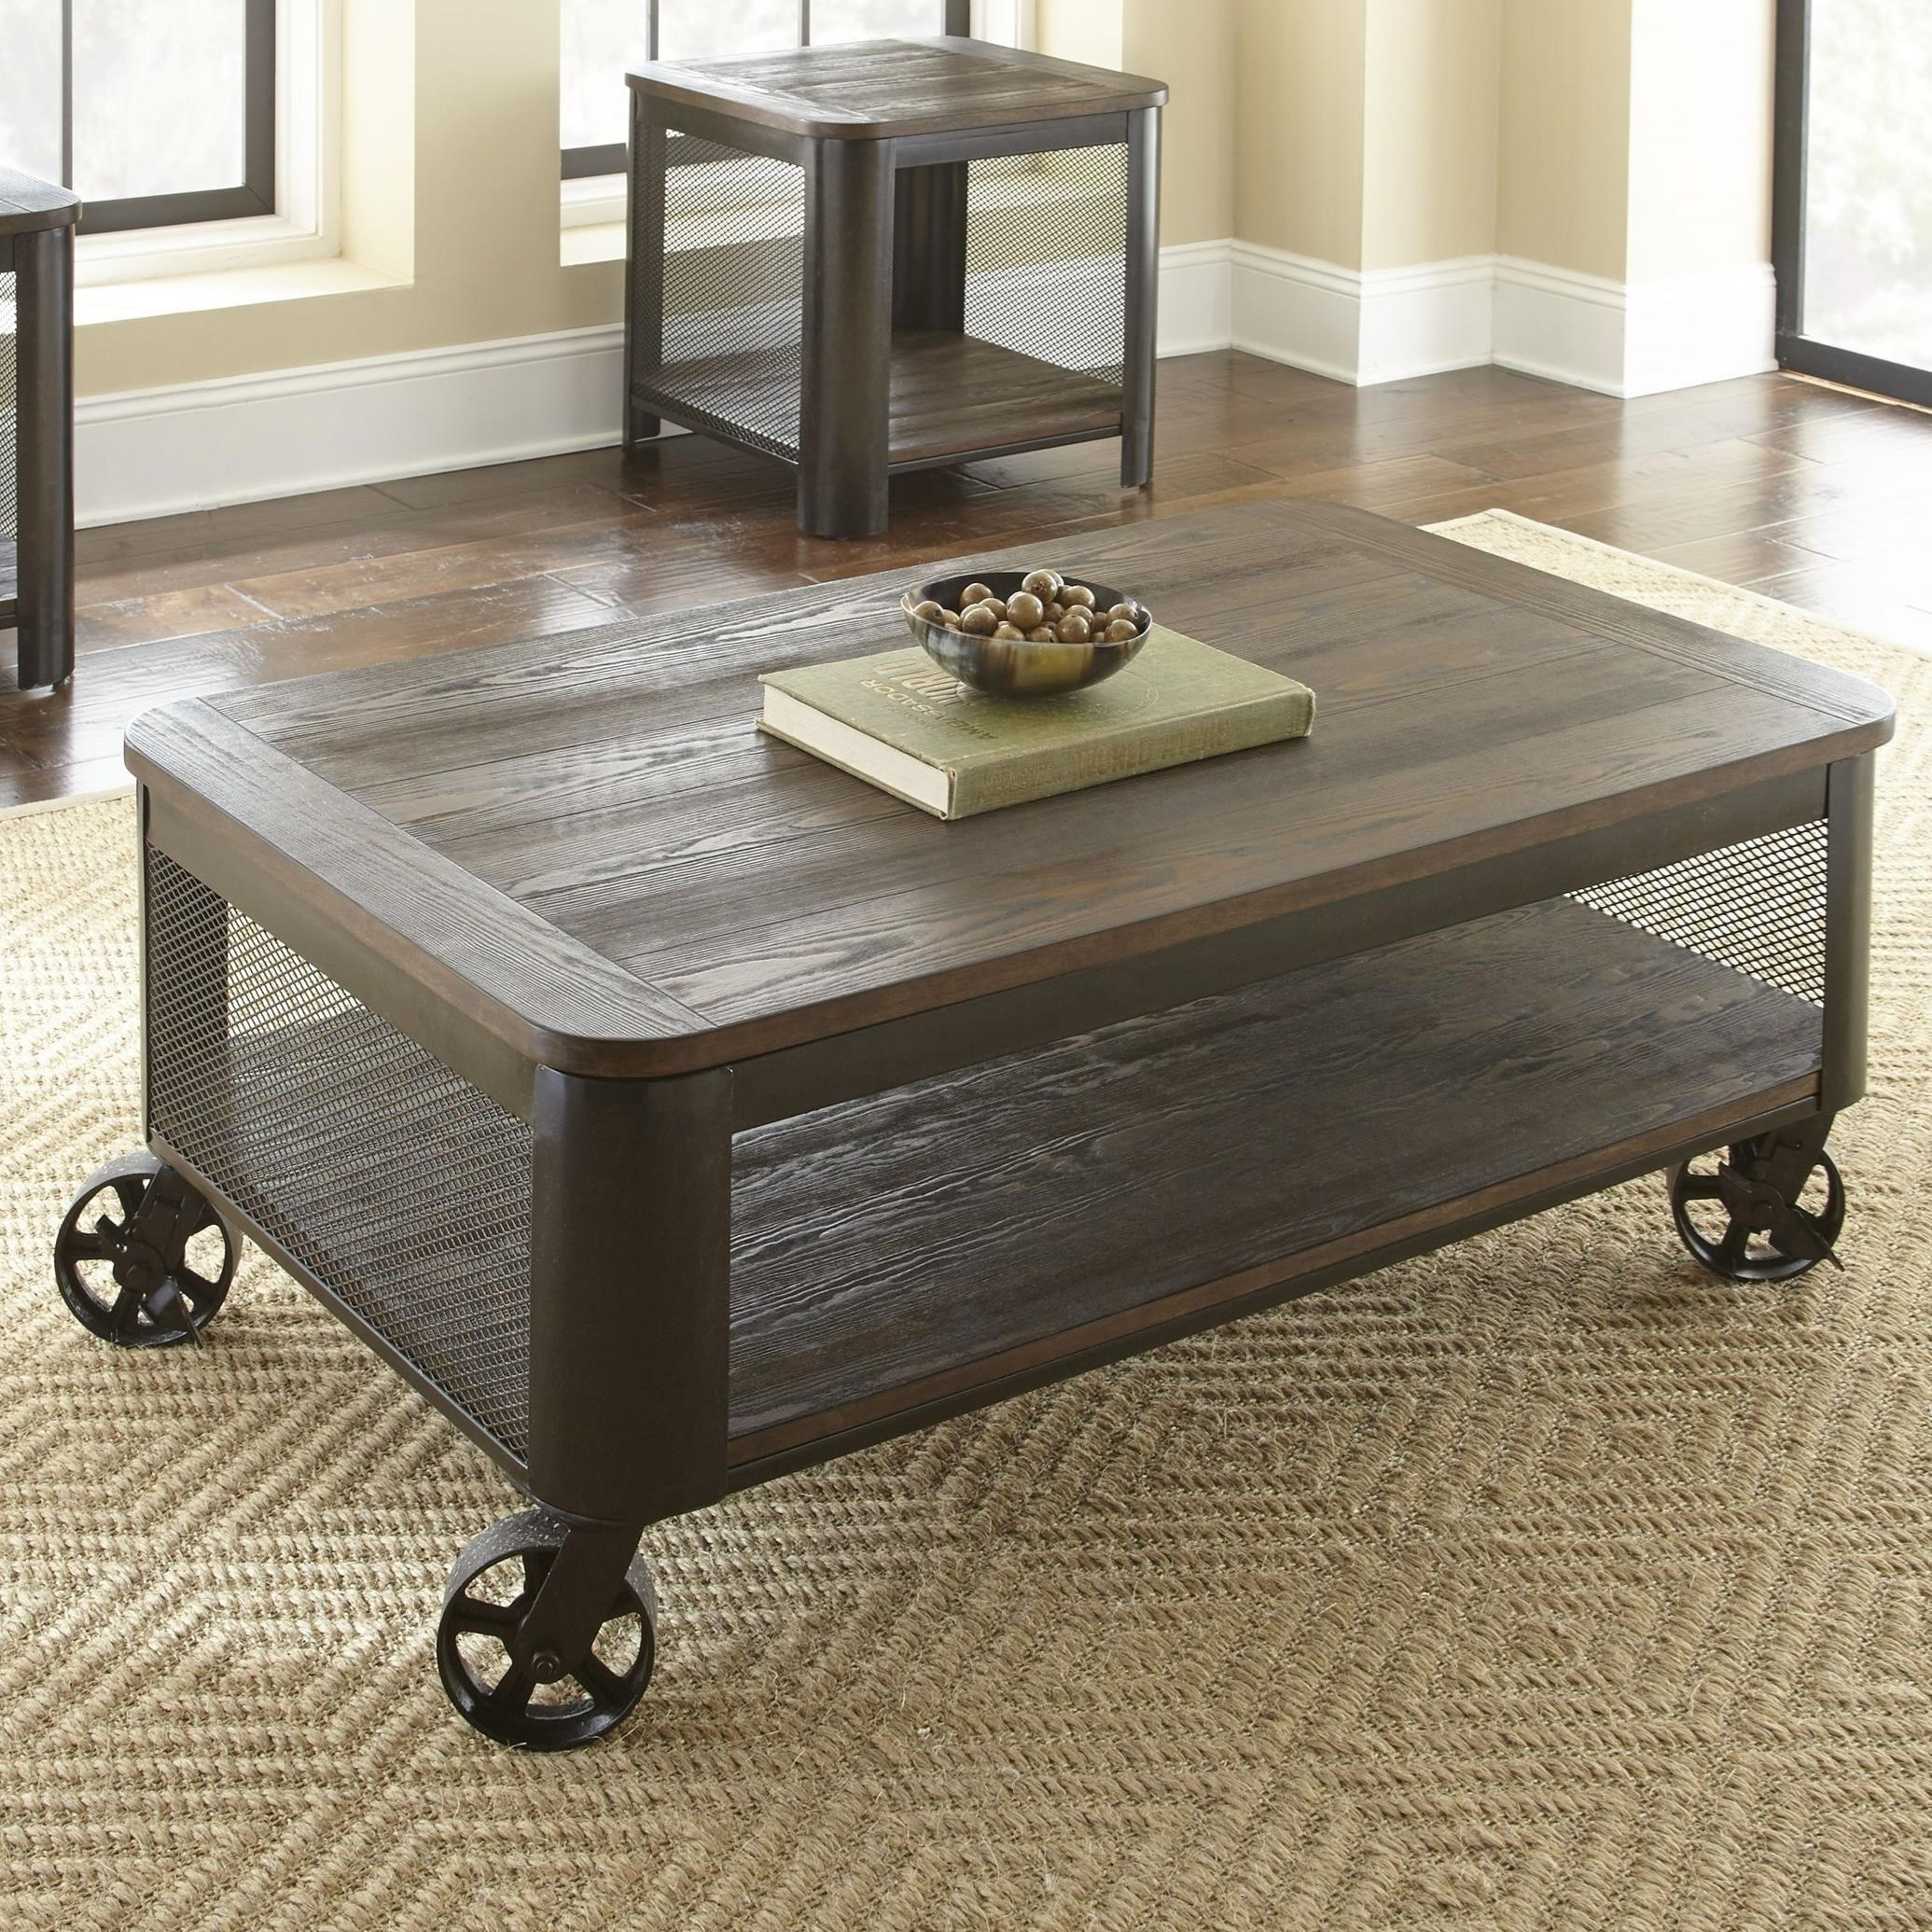 Barrow Lift Top Cocktail Table with Casters by Steve Silver at Walker's Furniture